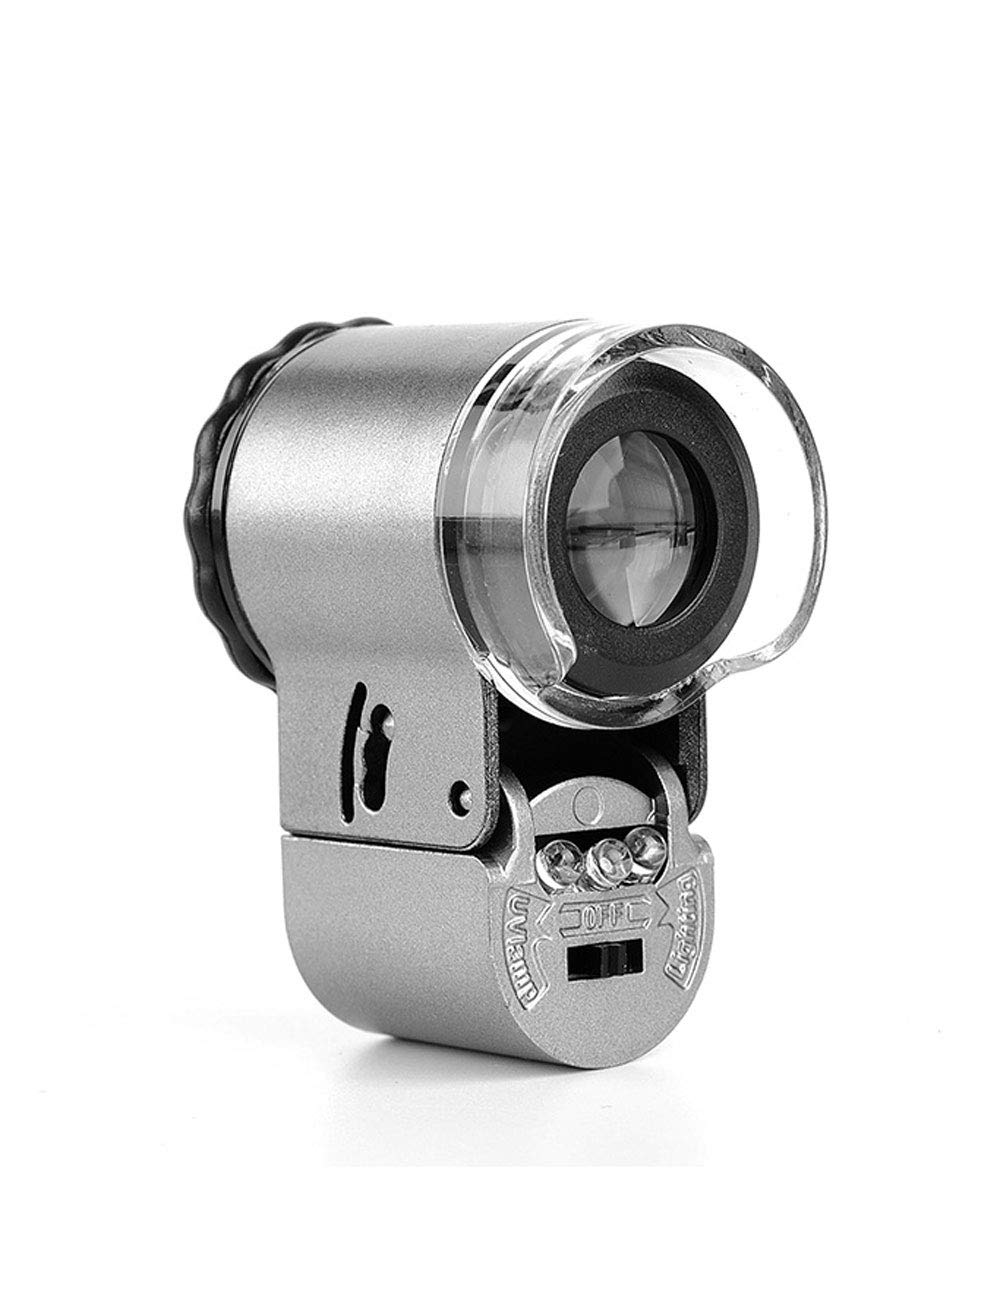 Magnifying 50 Times High-definition Micro Magnifying Glass, Two-color Light Source, Mini Microscope, Portable Philatelic Jewelry, Tea Smoke Stamp, Identification of Banknote Prints, Etc. Elderly Readi